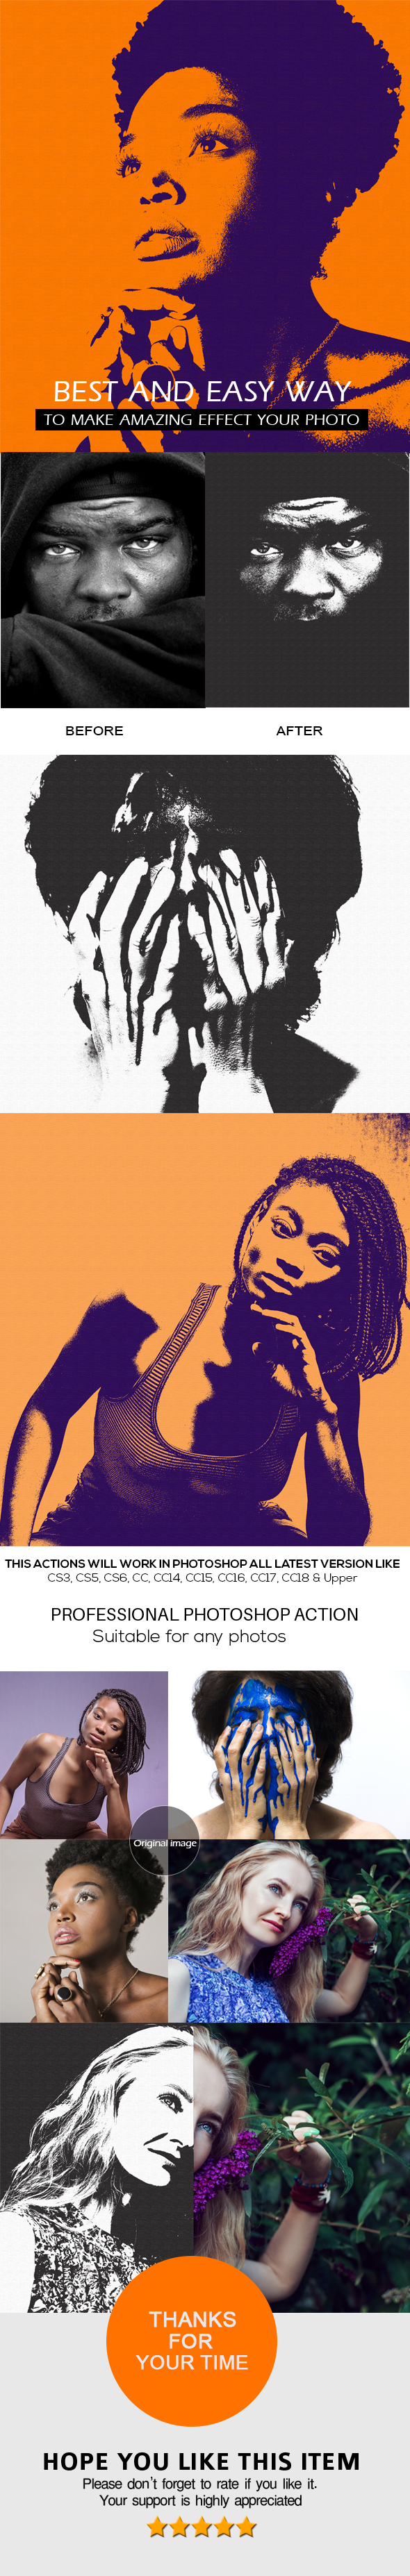 Duotone PoP Art Action - Phtotoshop Action - Photo Effects Actions